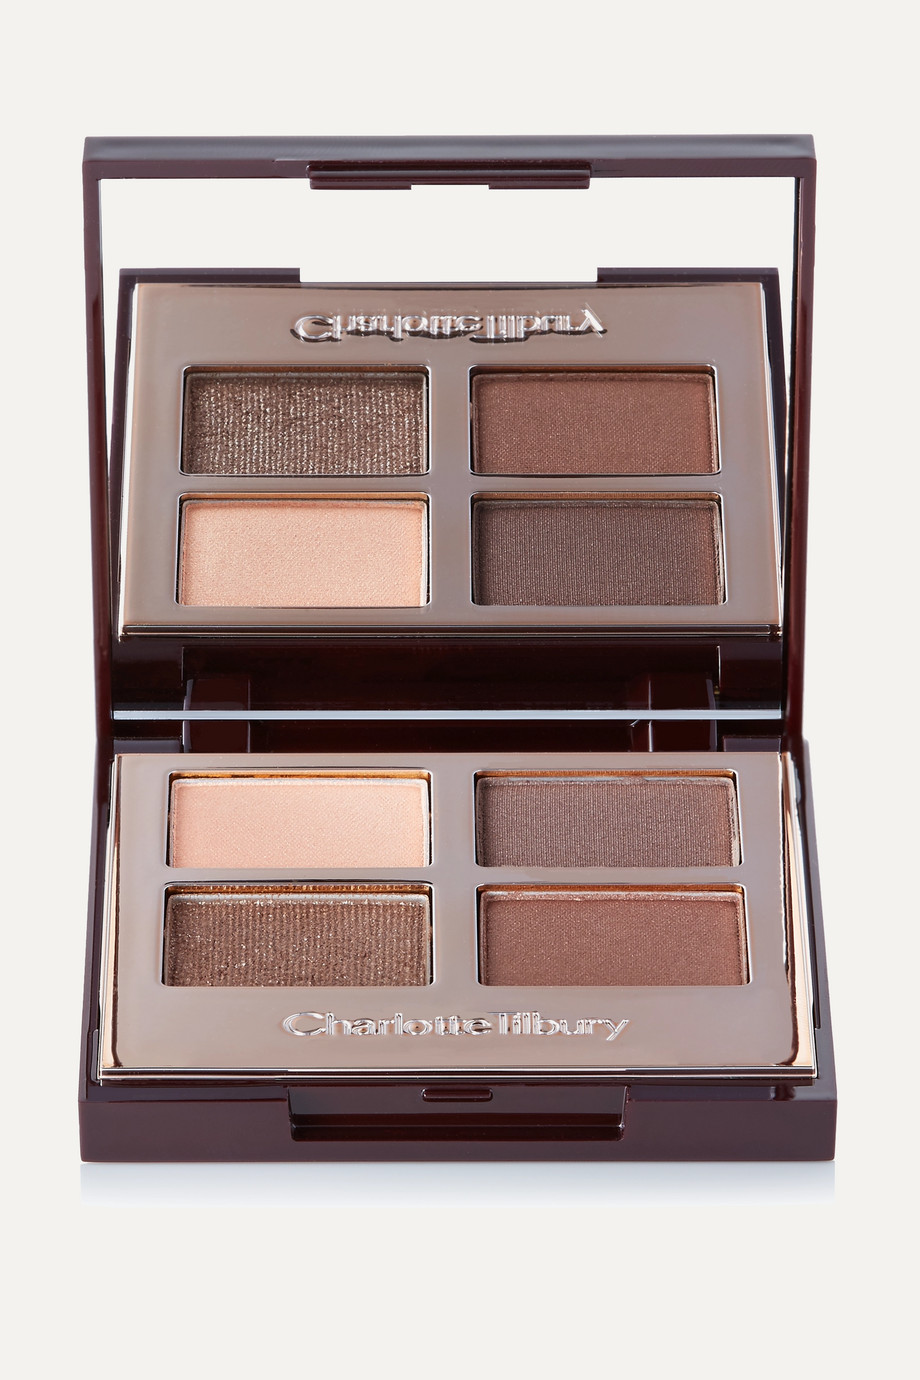 Charlotte Tilbury Luxury Palette Eyeshadow Quad - The Golden Goddess